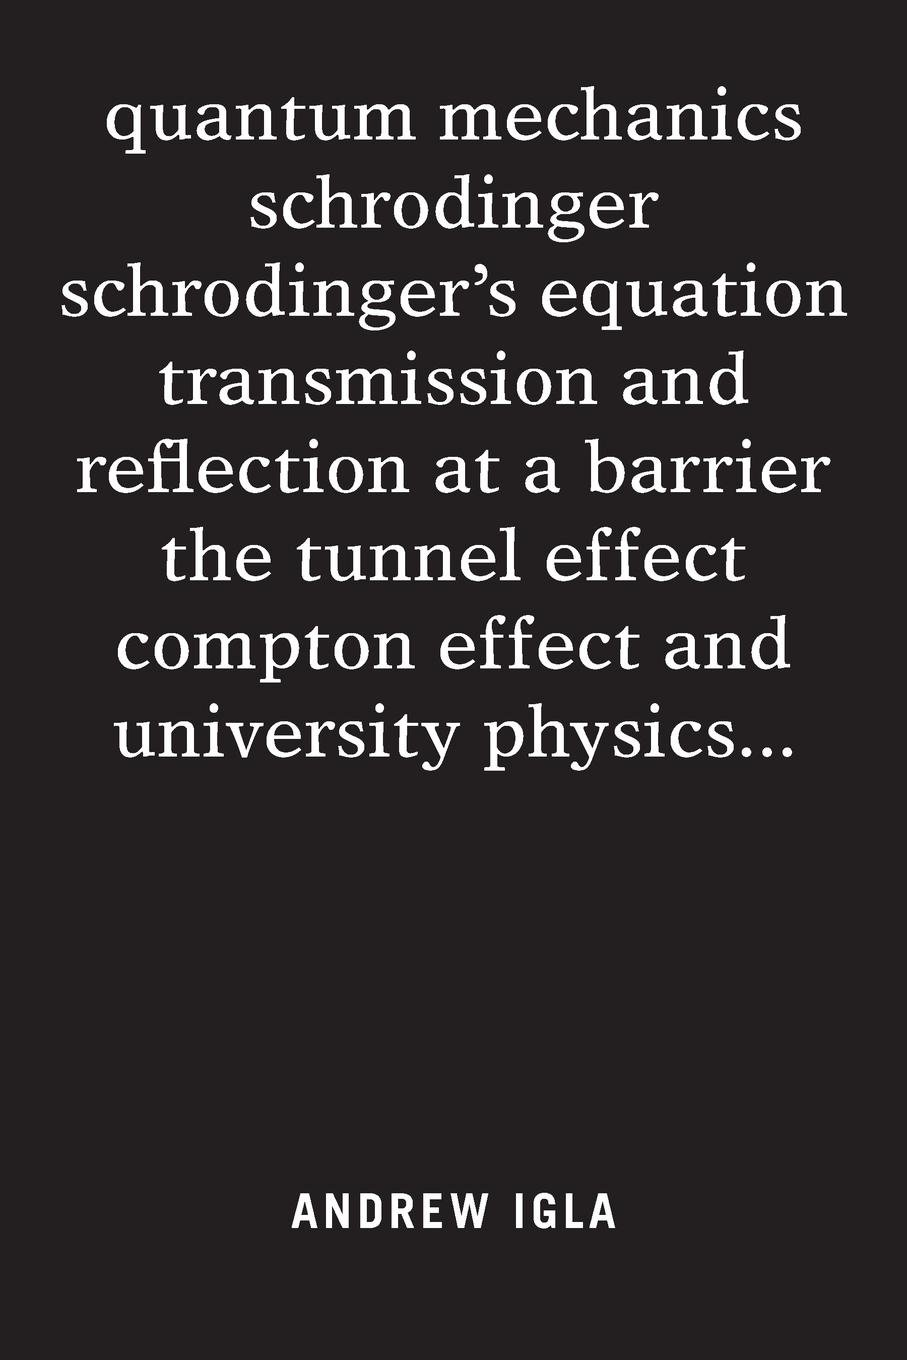 Read Online Quantum Mechanics Schrodinger Schrodinger's Equation Transmission and Reflection at a Barrier the Tunnel Effect Compton Effect and University Physics . . . ebook